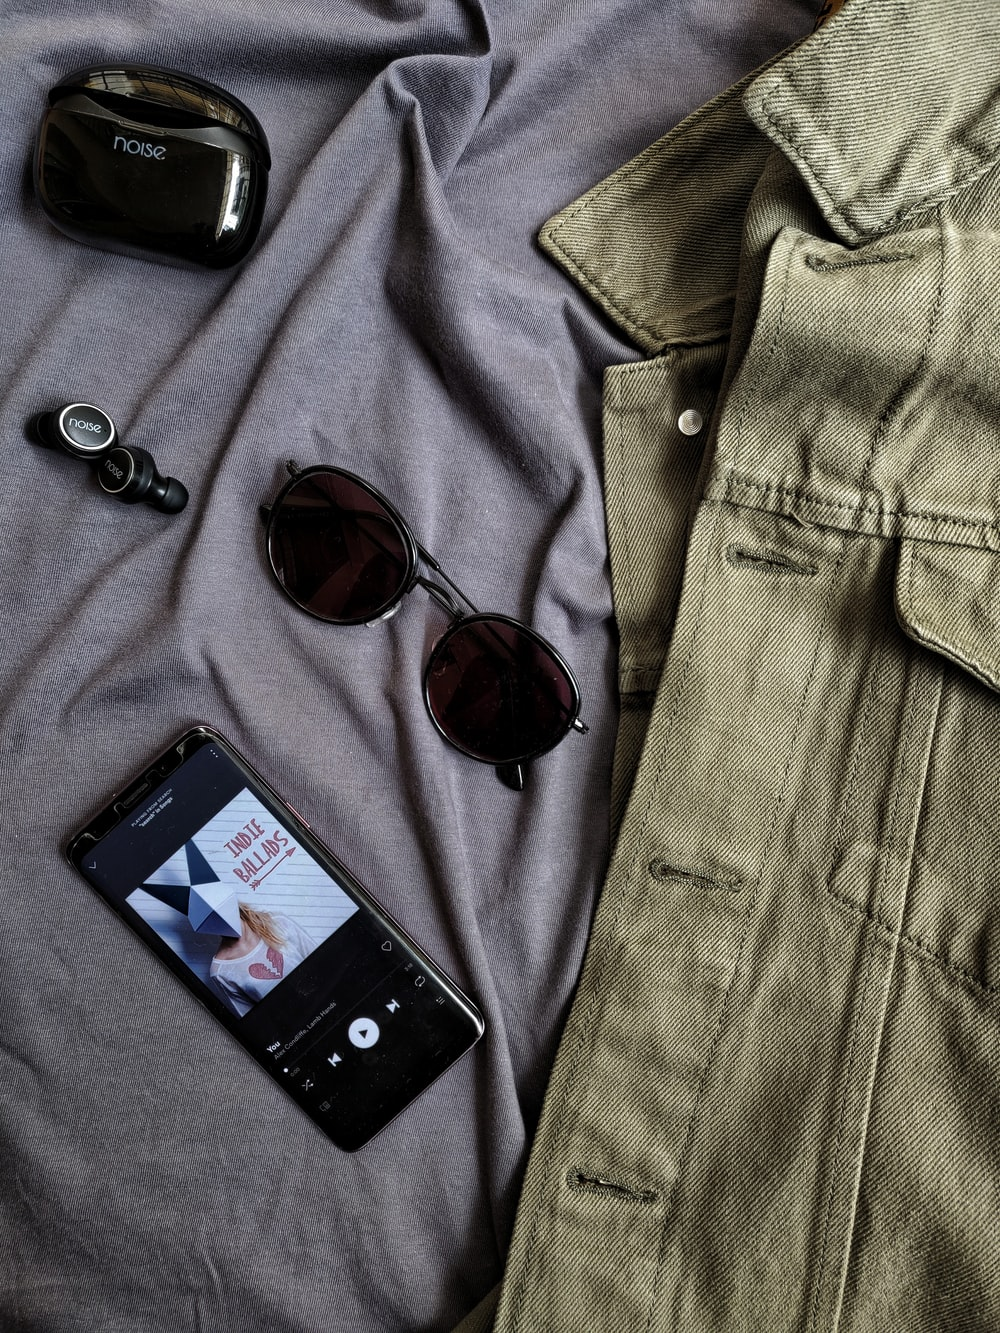 black iphone 4 beside brown framed sunglasses and gray denim button up shirt